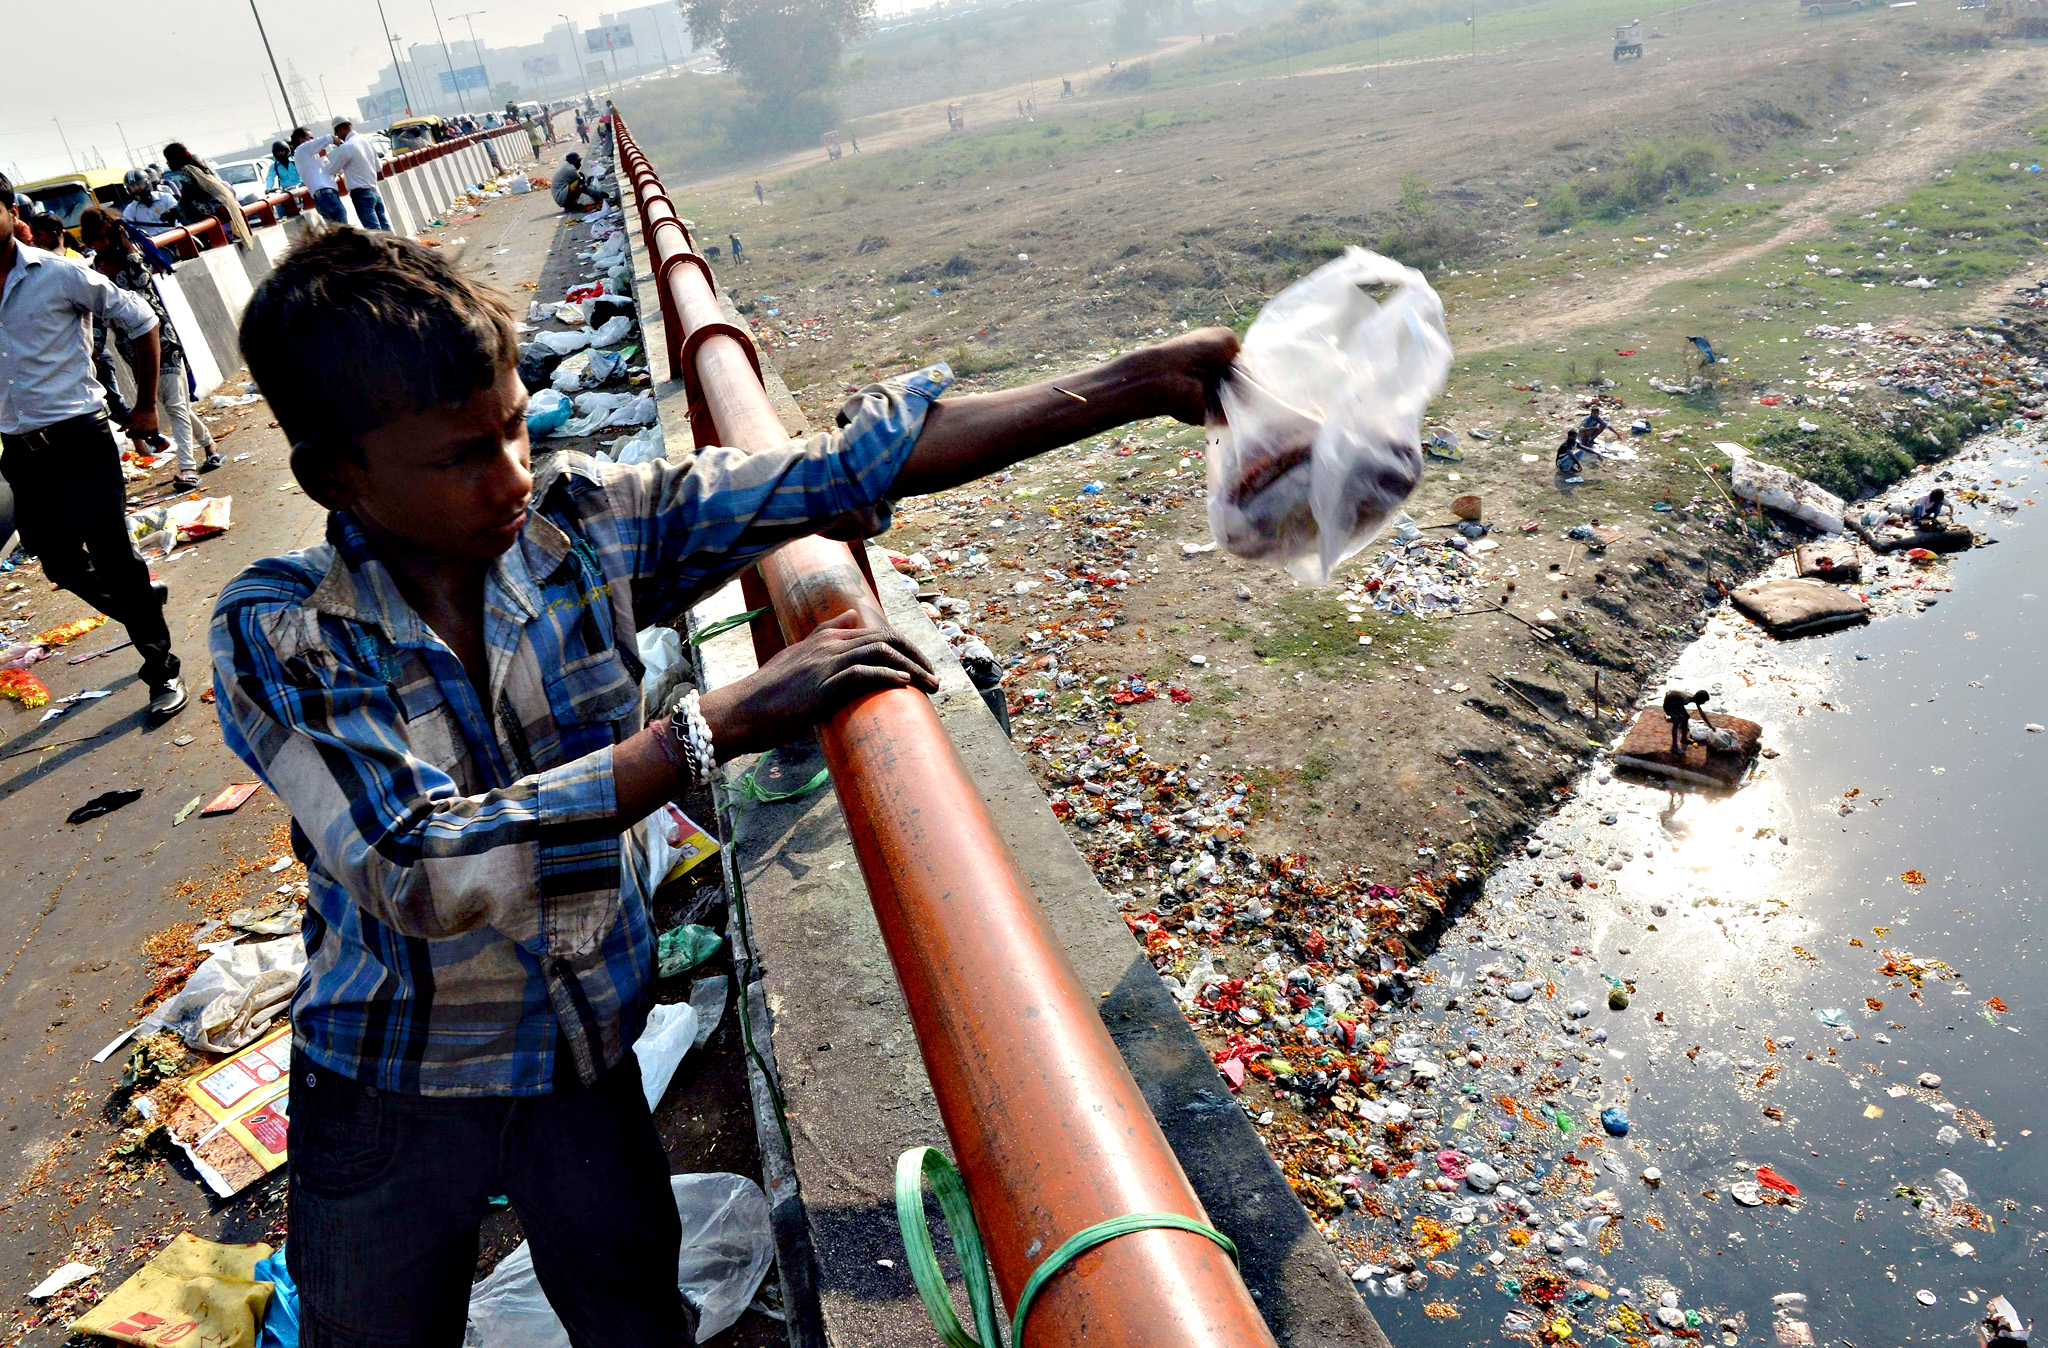 An Indian boy throws domestic garbage into the already polluted Yamuna river in New Delhi on October 23, 2015. Considered one of the holiest rivers in India, the Yamuna River has been dying a slow death from pollution for decades despite the investment of millions of dollars to preserve its ecosystem. According to the Central Pollution Control Board (CPCB) which monitors the water quality of the Yamuna in Delhi, seventy percent of the pollution in the river is from untreated sewage while the remaining thirty percent is from industrial sources, agricultural run-off and domestic garbage